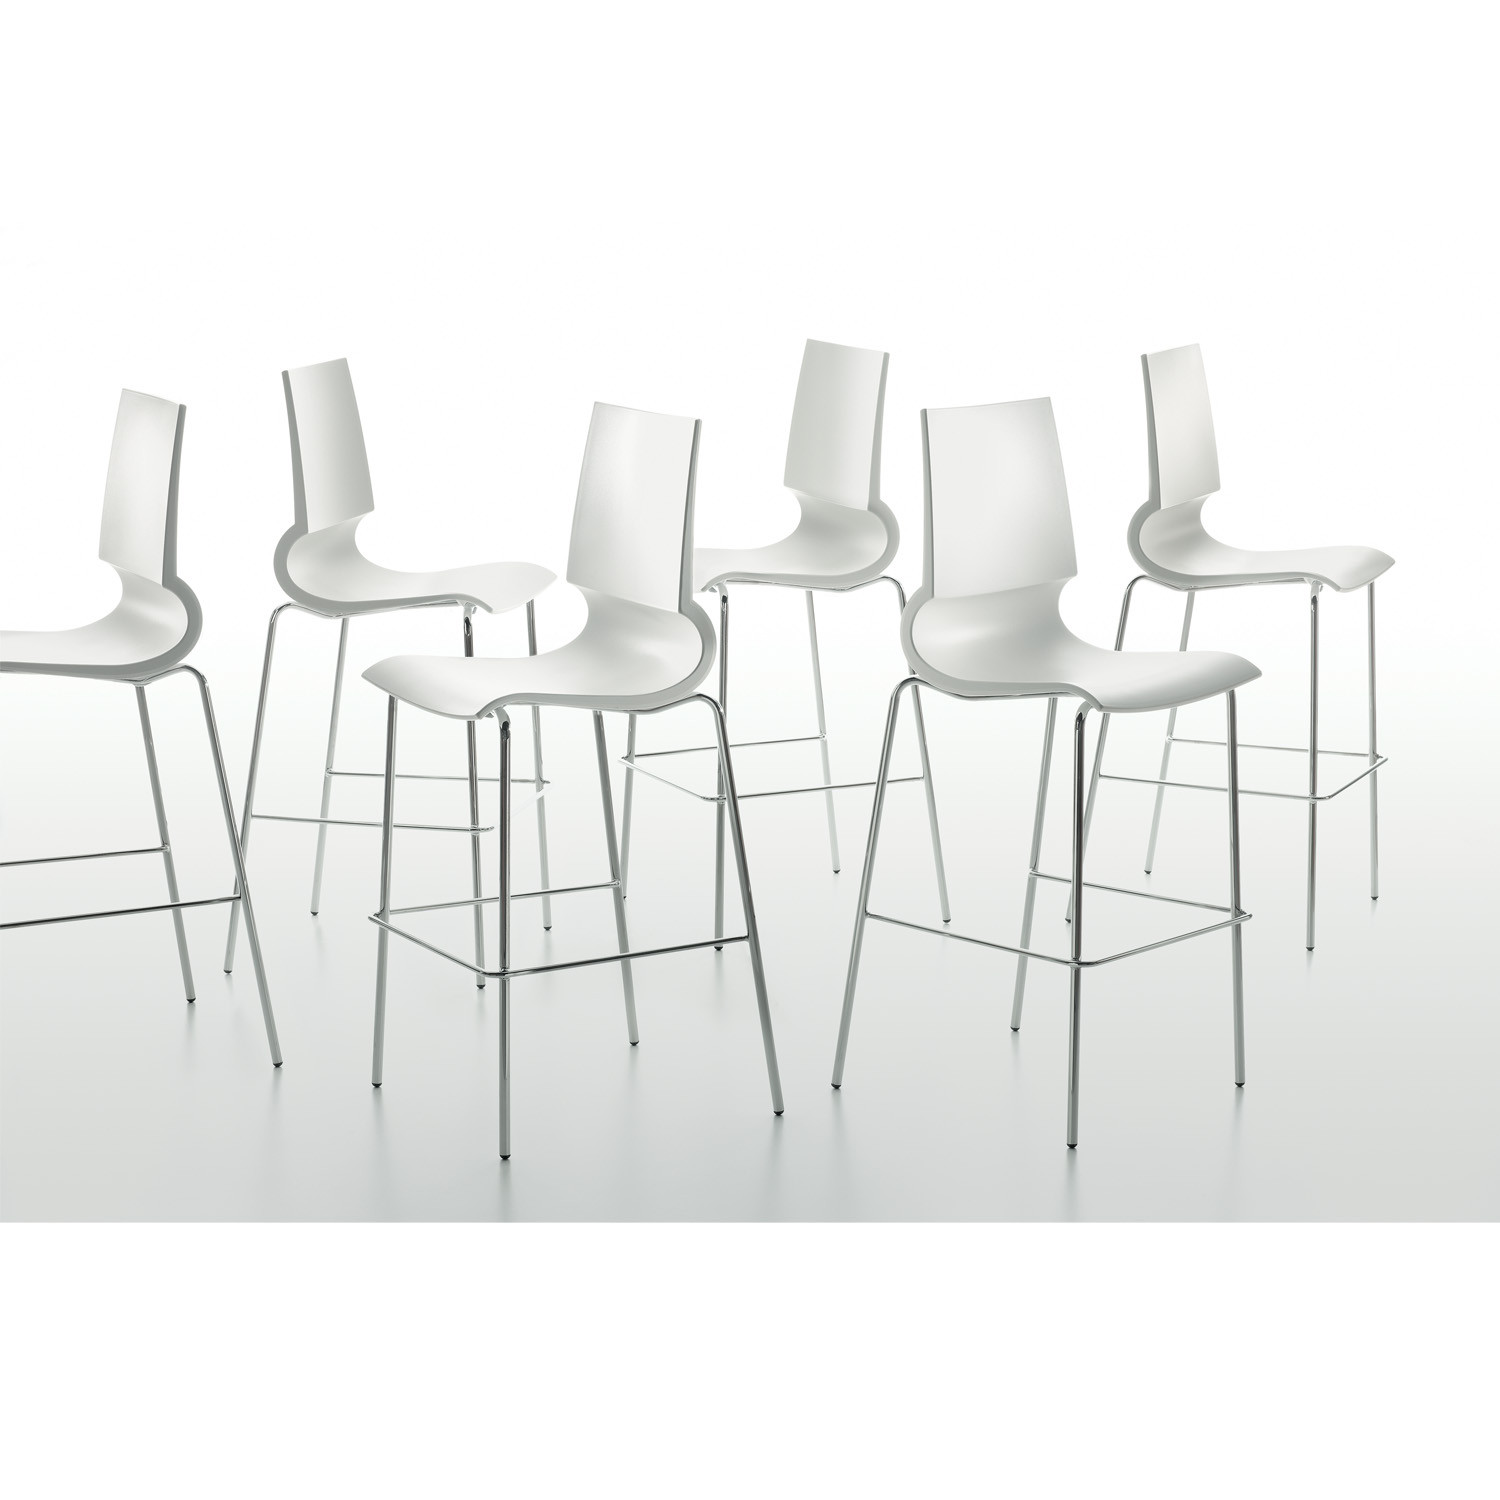 Ricciolina Bar Stools by MaxDesign